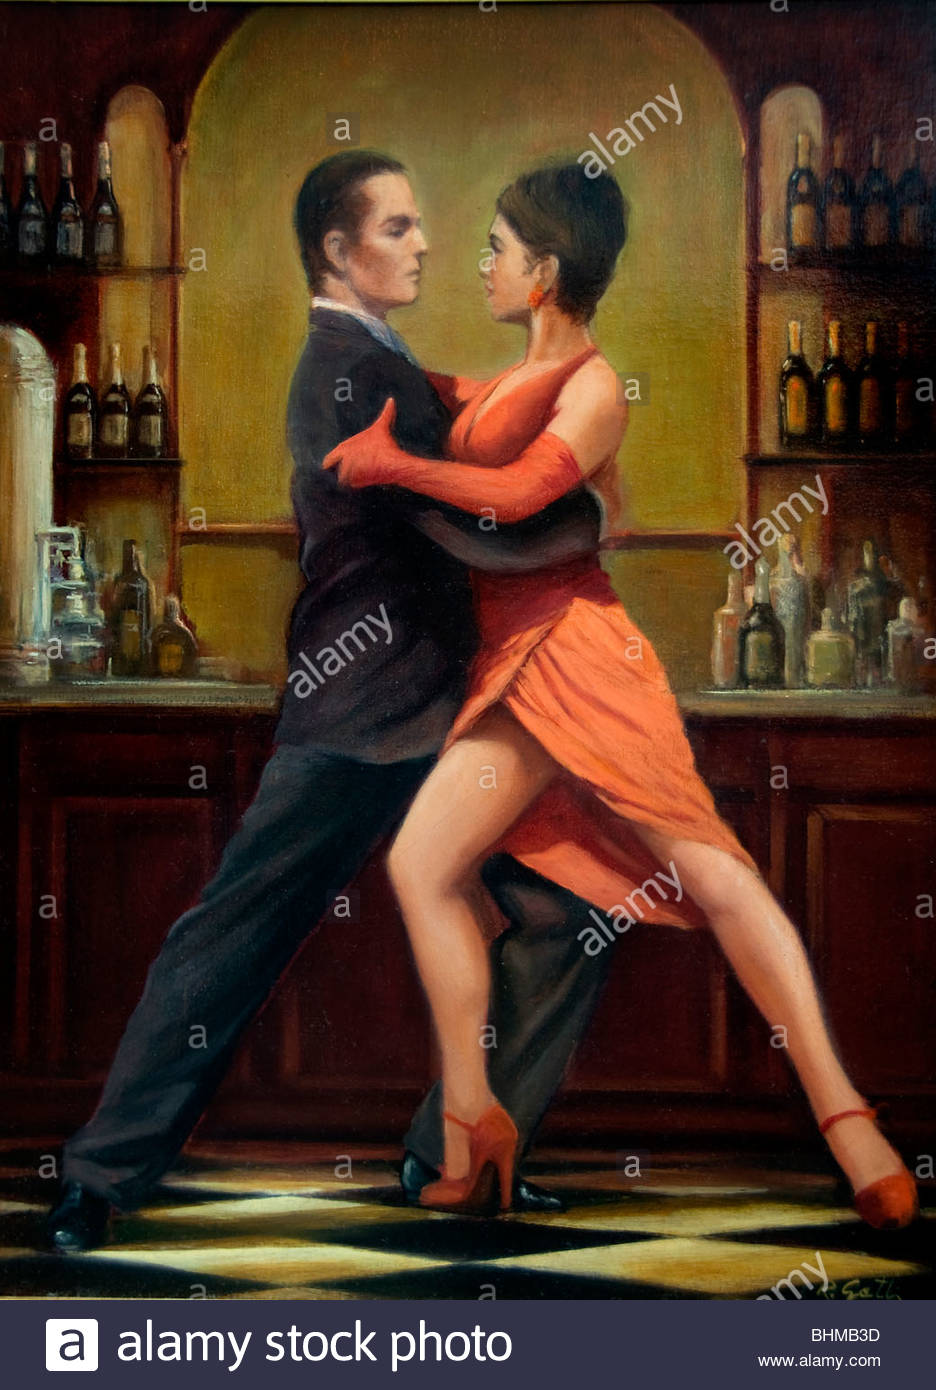 Tango Buenos Aires Argentina La Boca El Caminito Sign street Painting Stock Photo